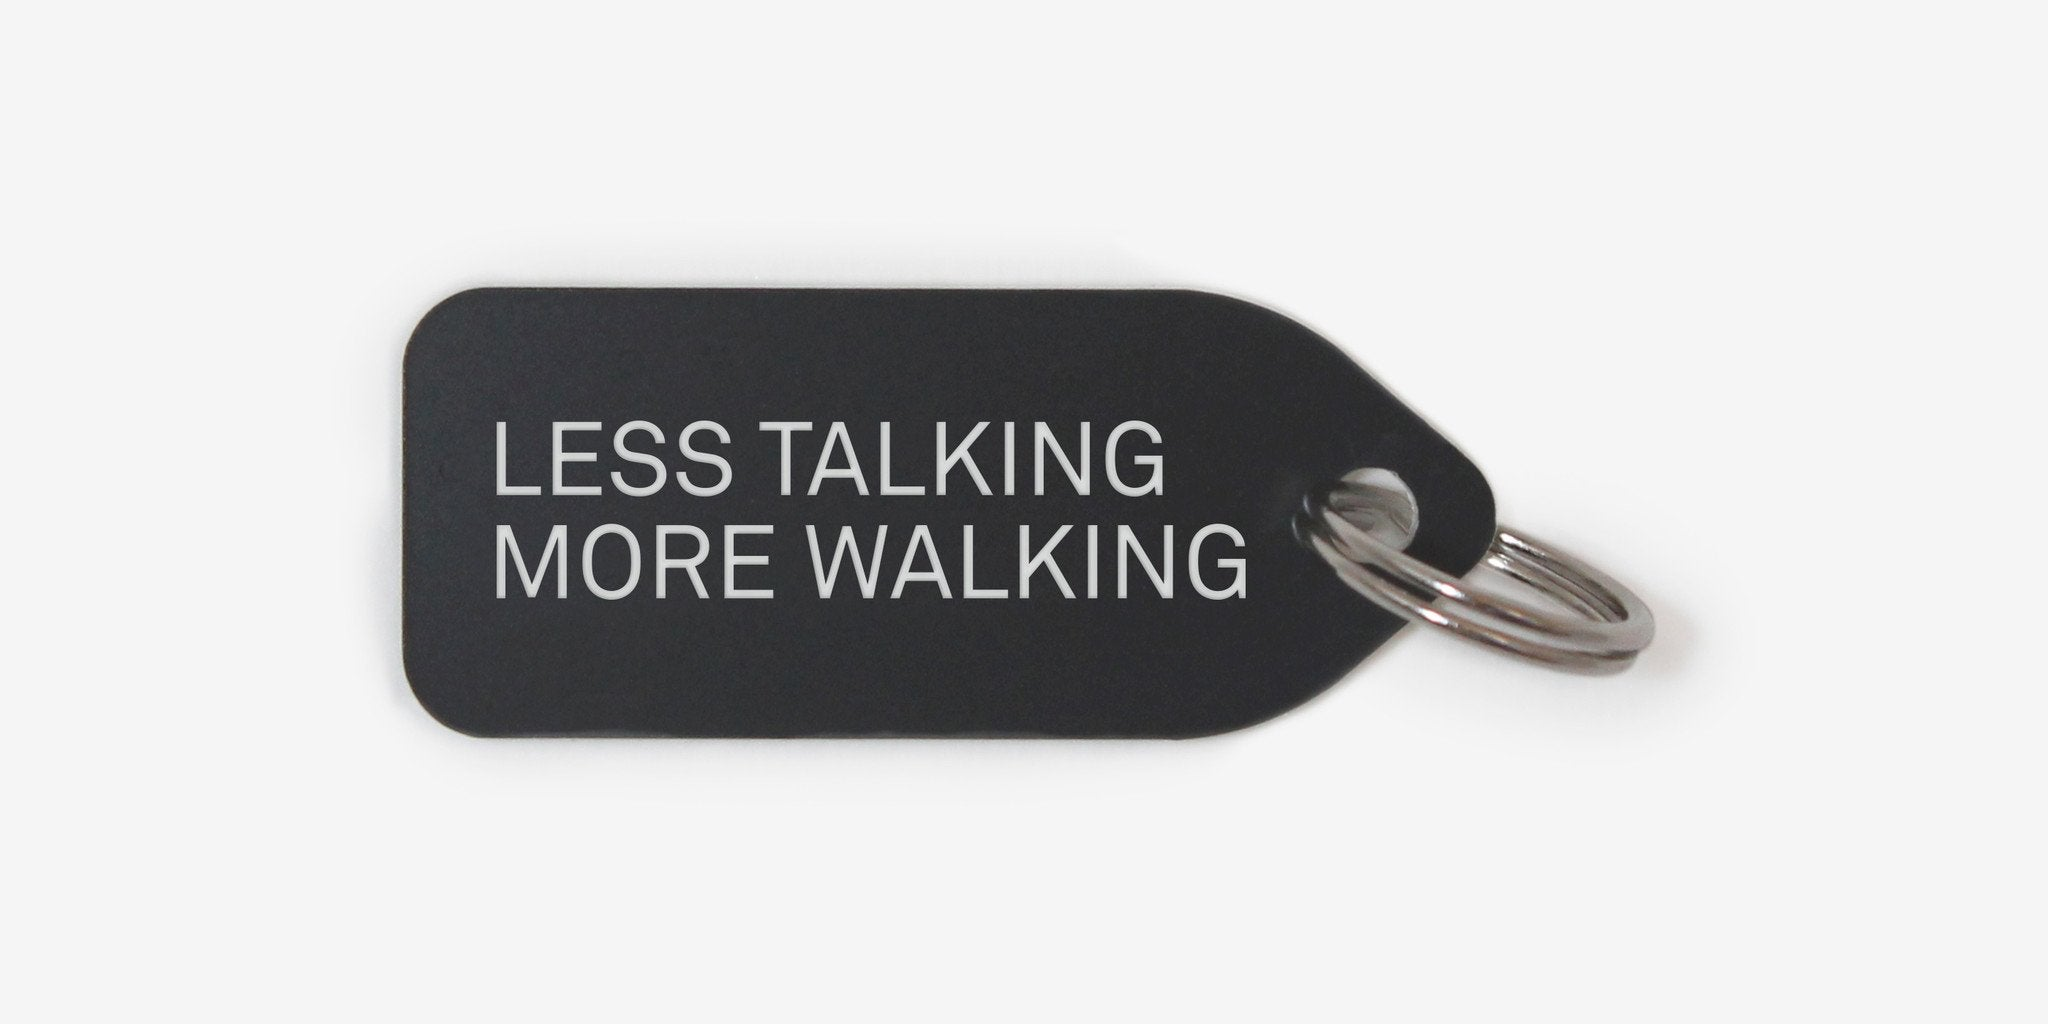 Dog tag - Less talking more walking